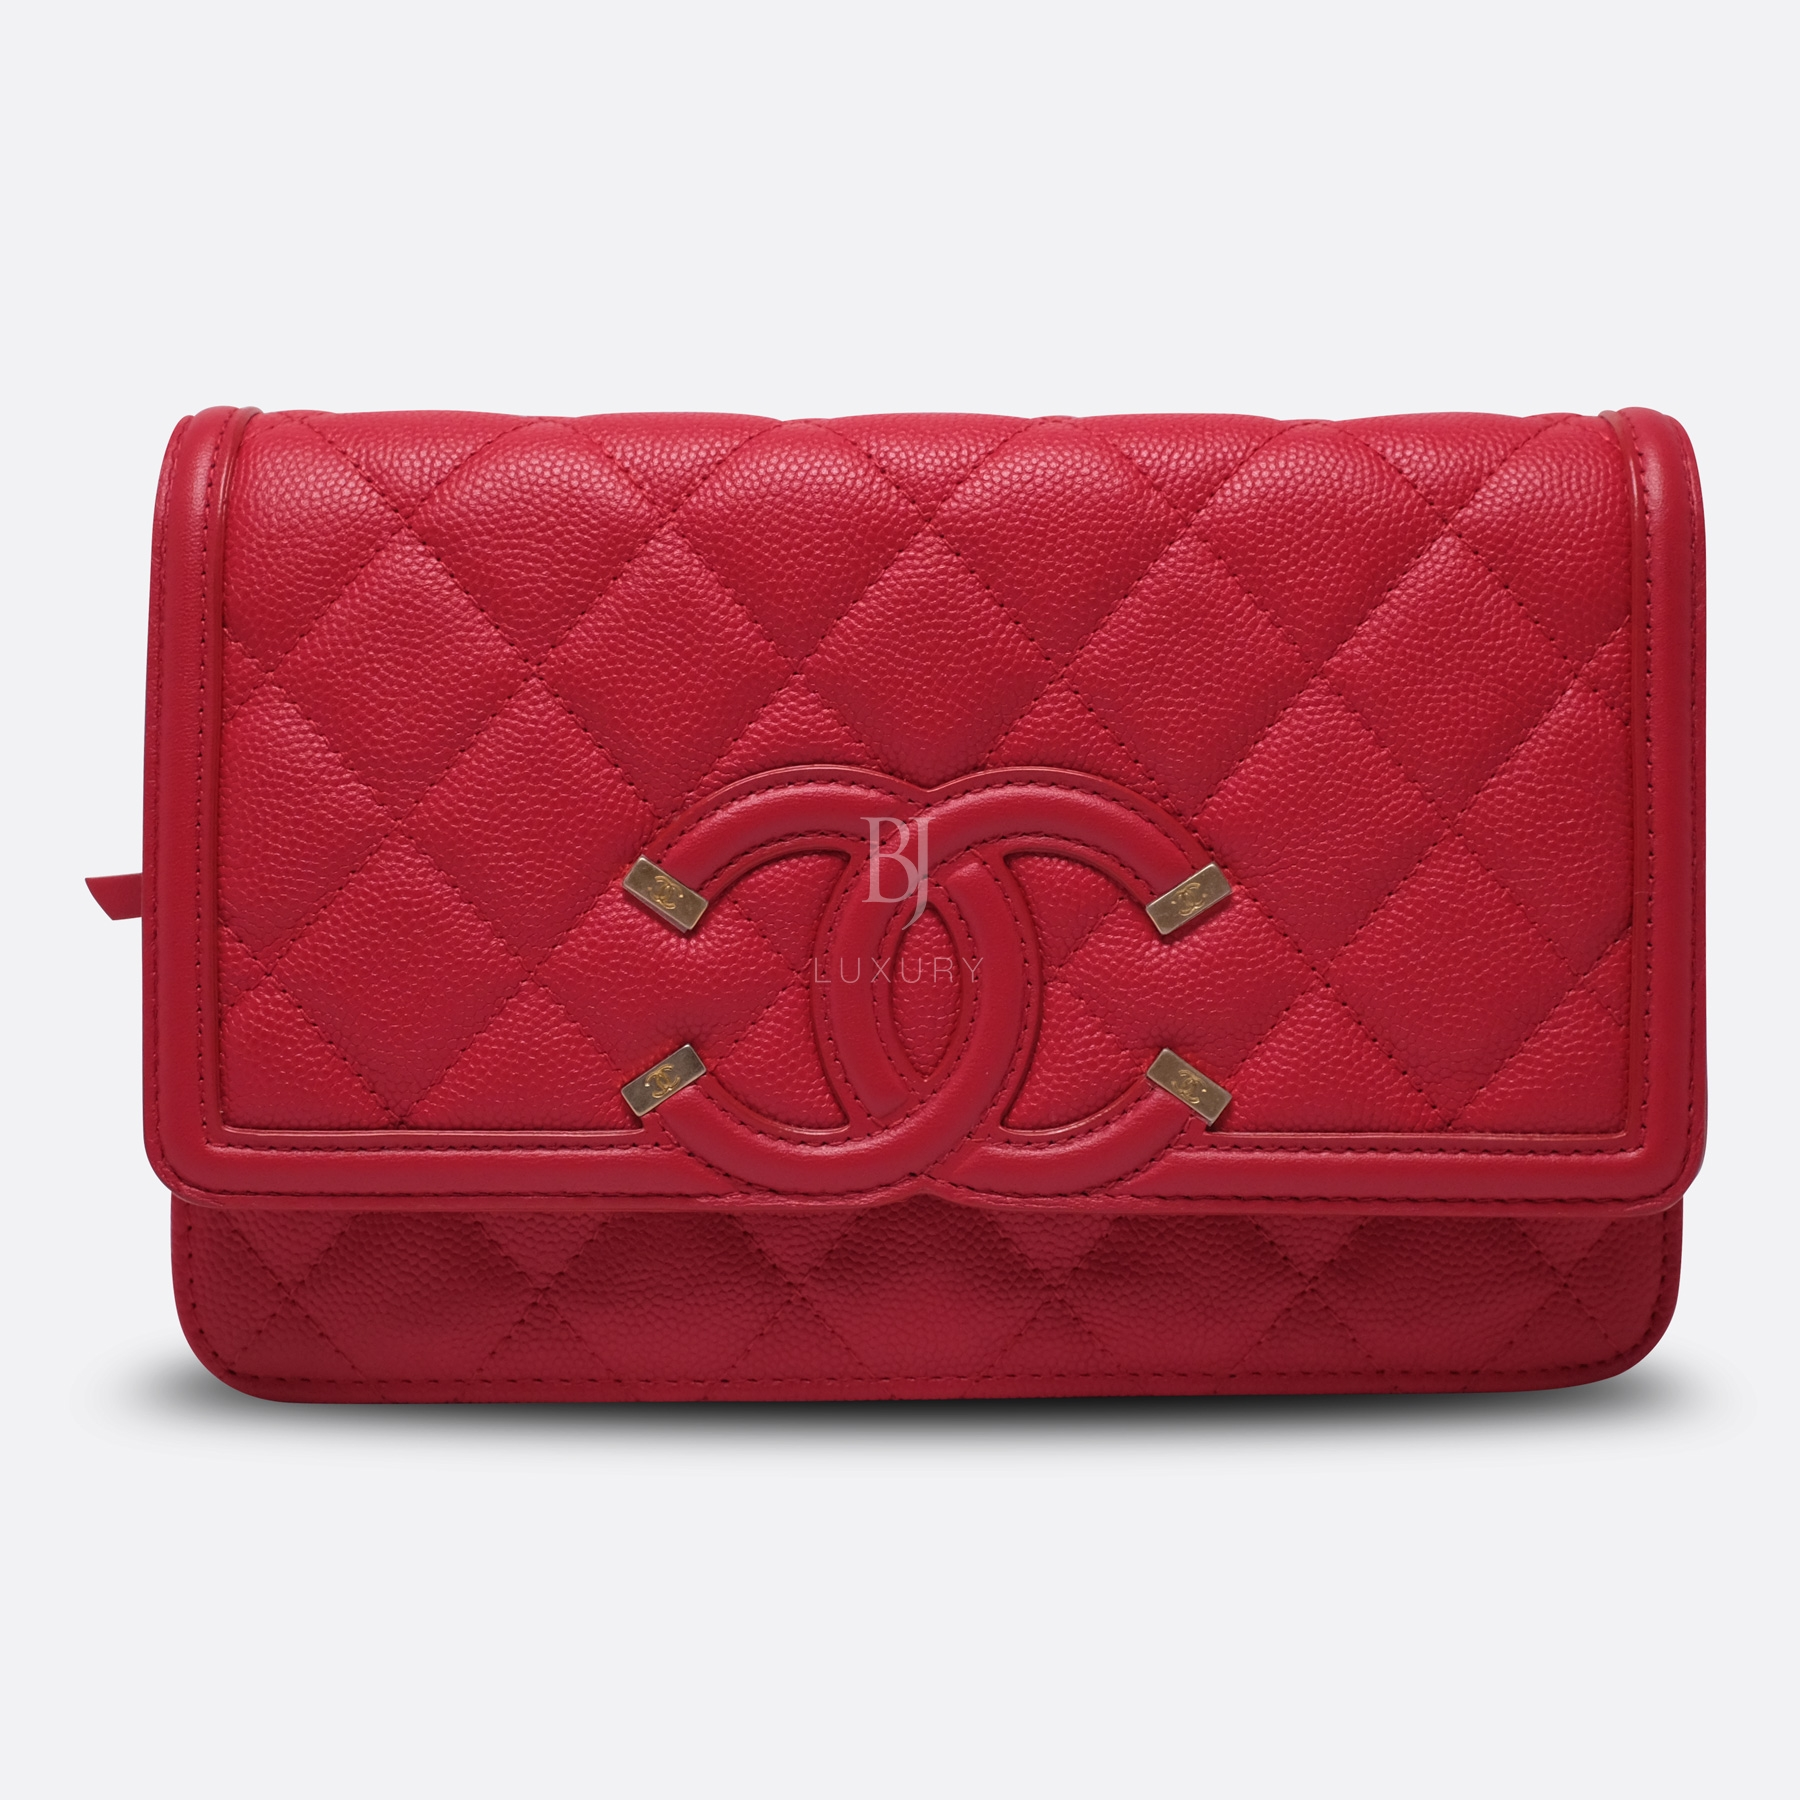 Chanel Wallet On Chain Red Caviar Brushed Gold BJ Luxury 1.jpg